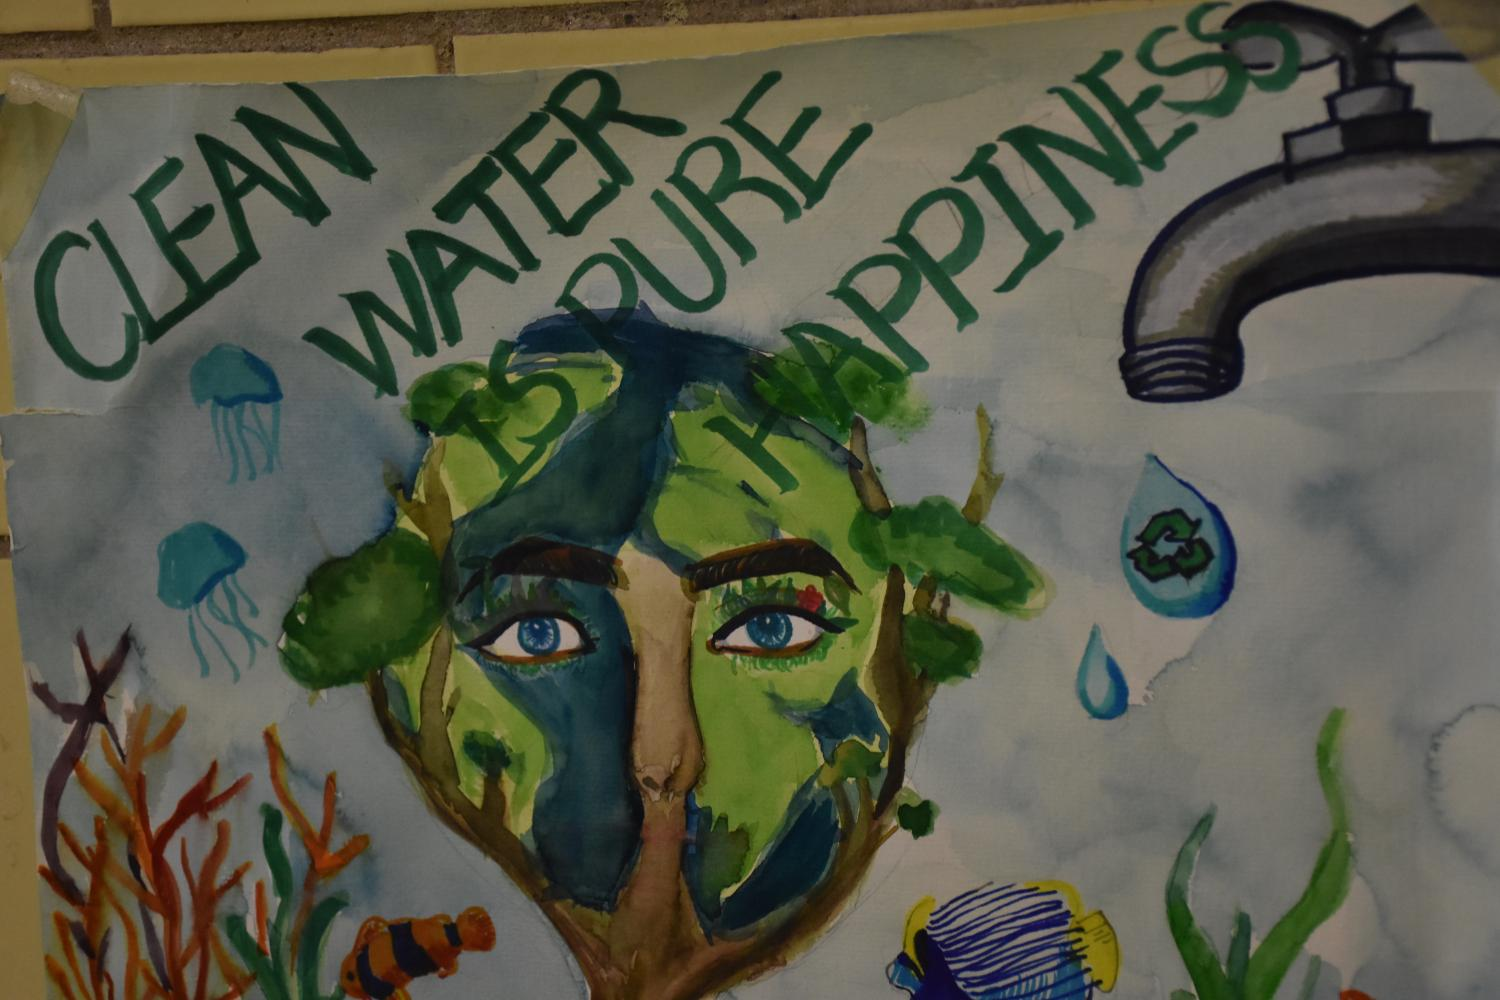 A+poster+promotes+the+conservation+of+clean+water+to+combat+the+issue+of+water+pollution.